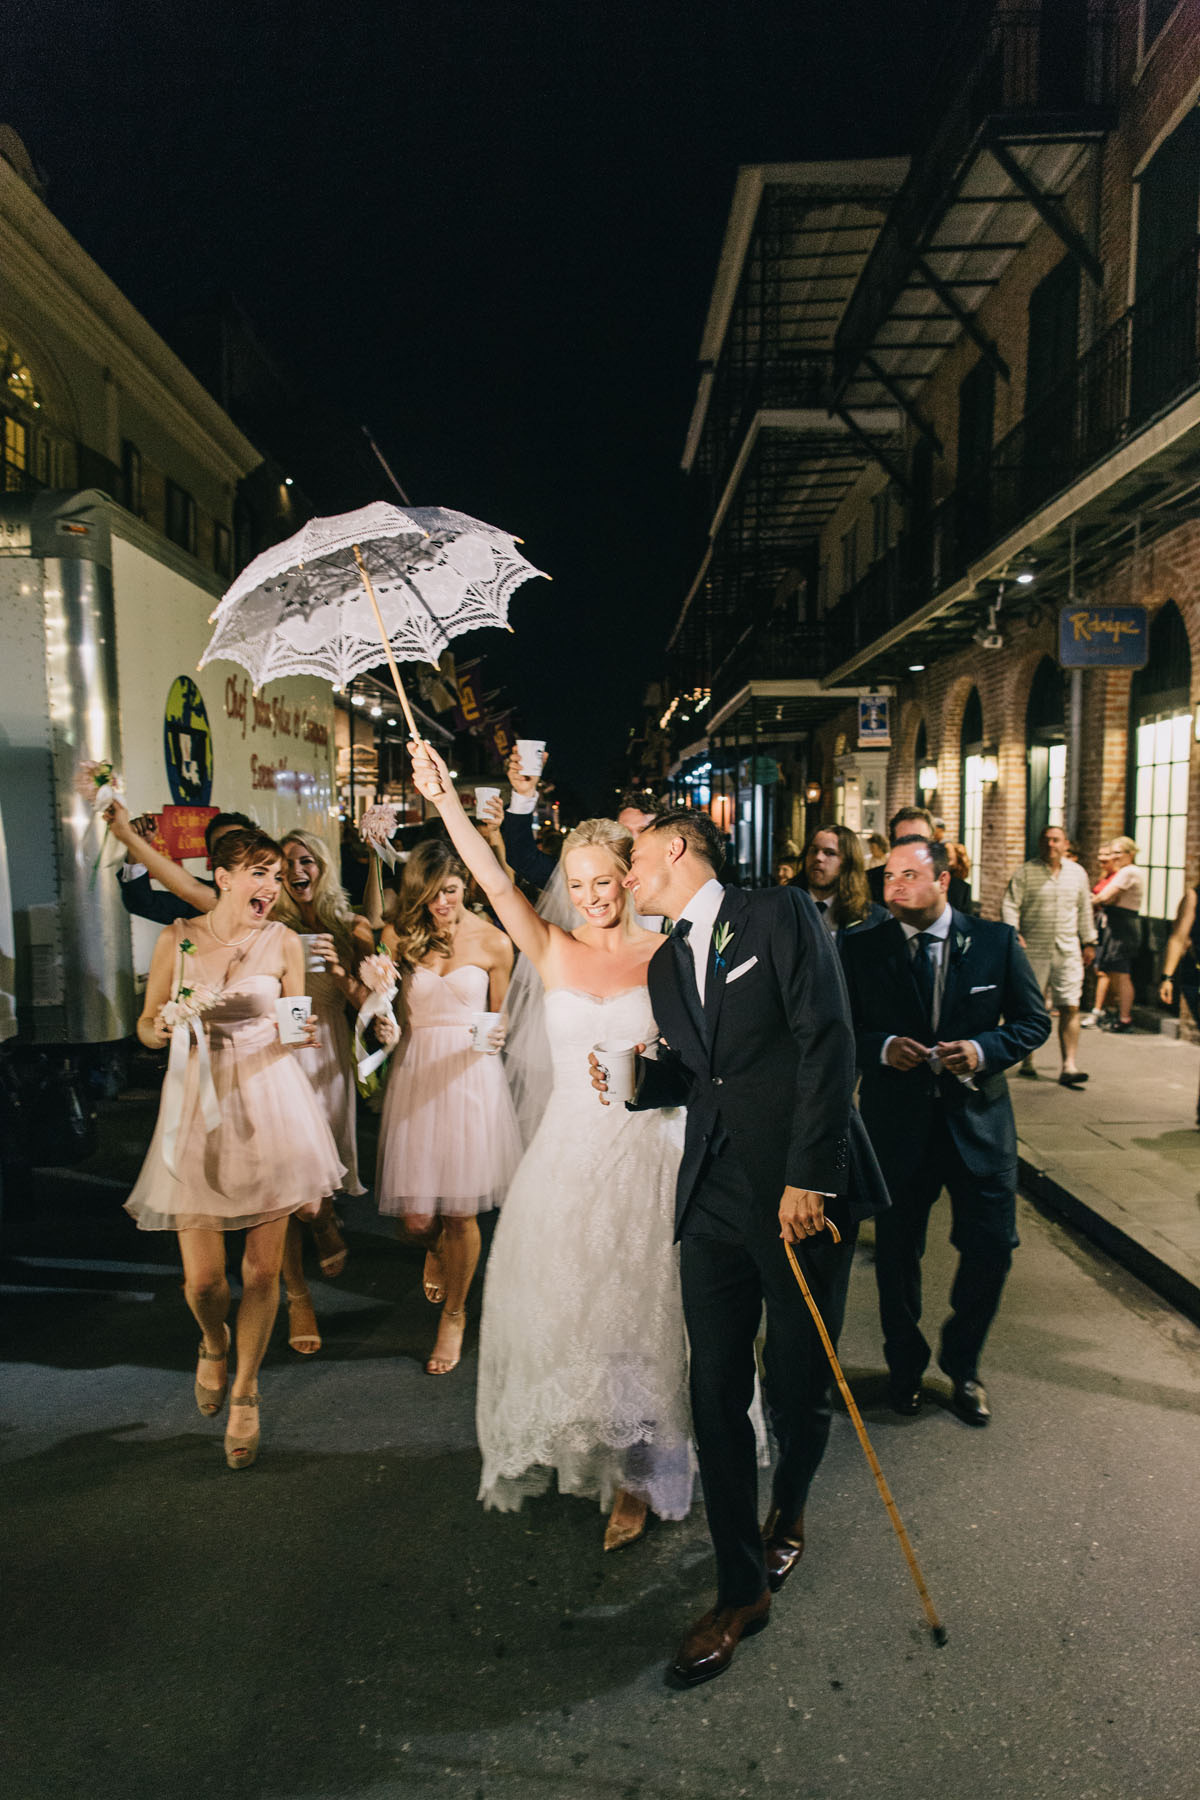 Joe king and candice accolade wedding pictures